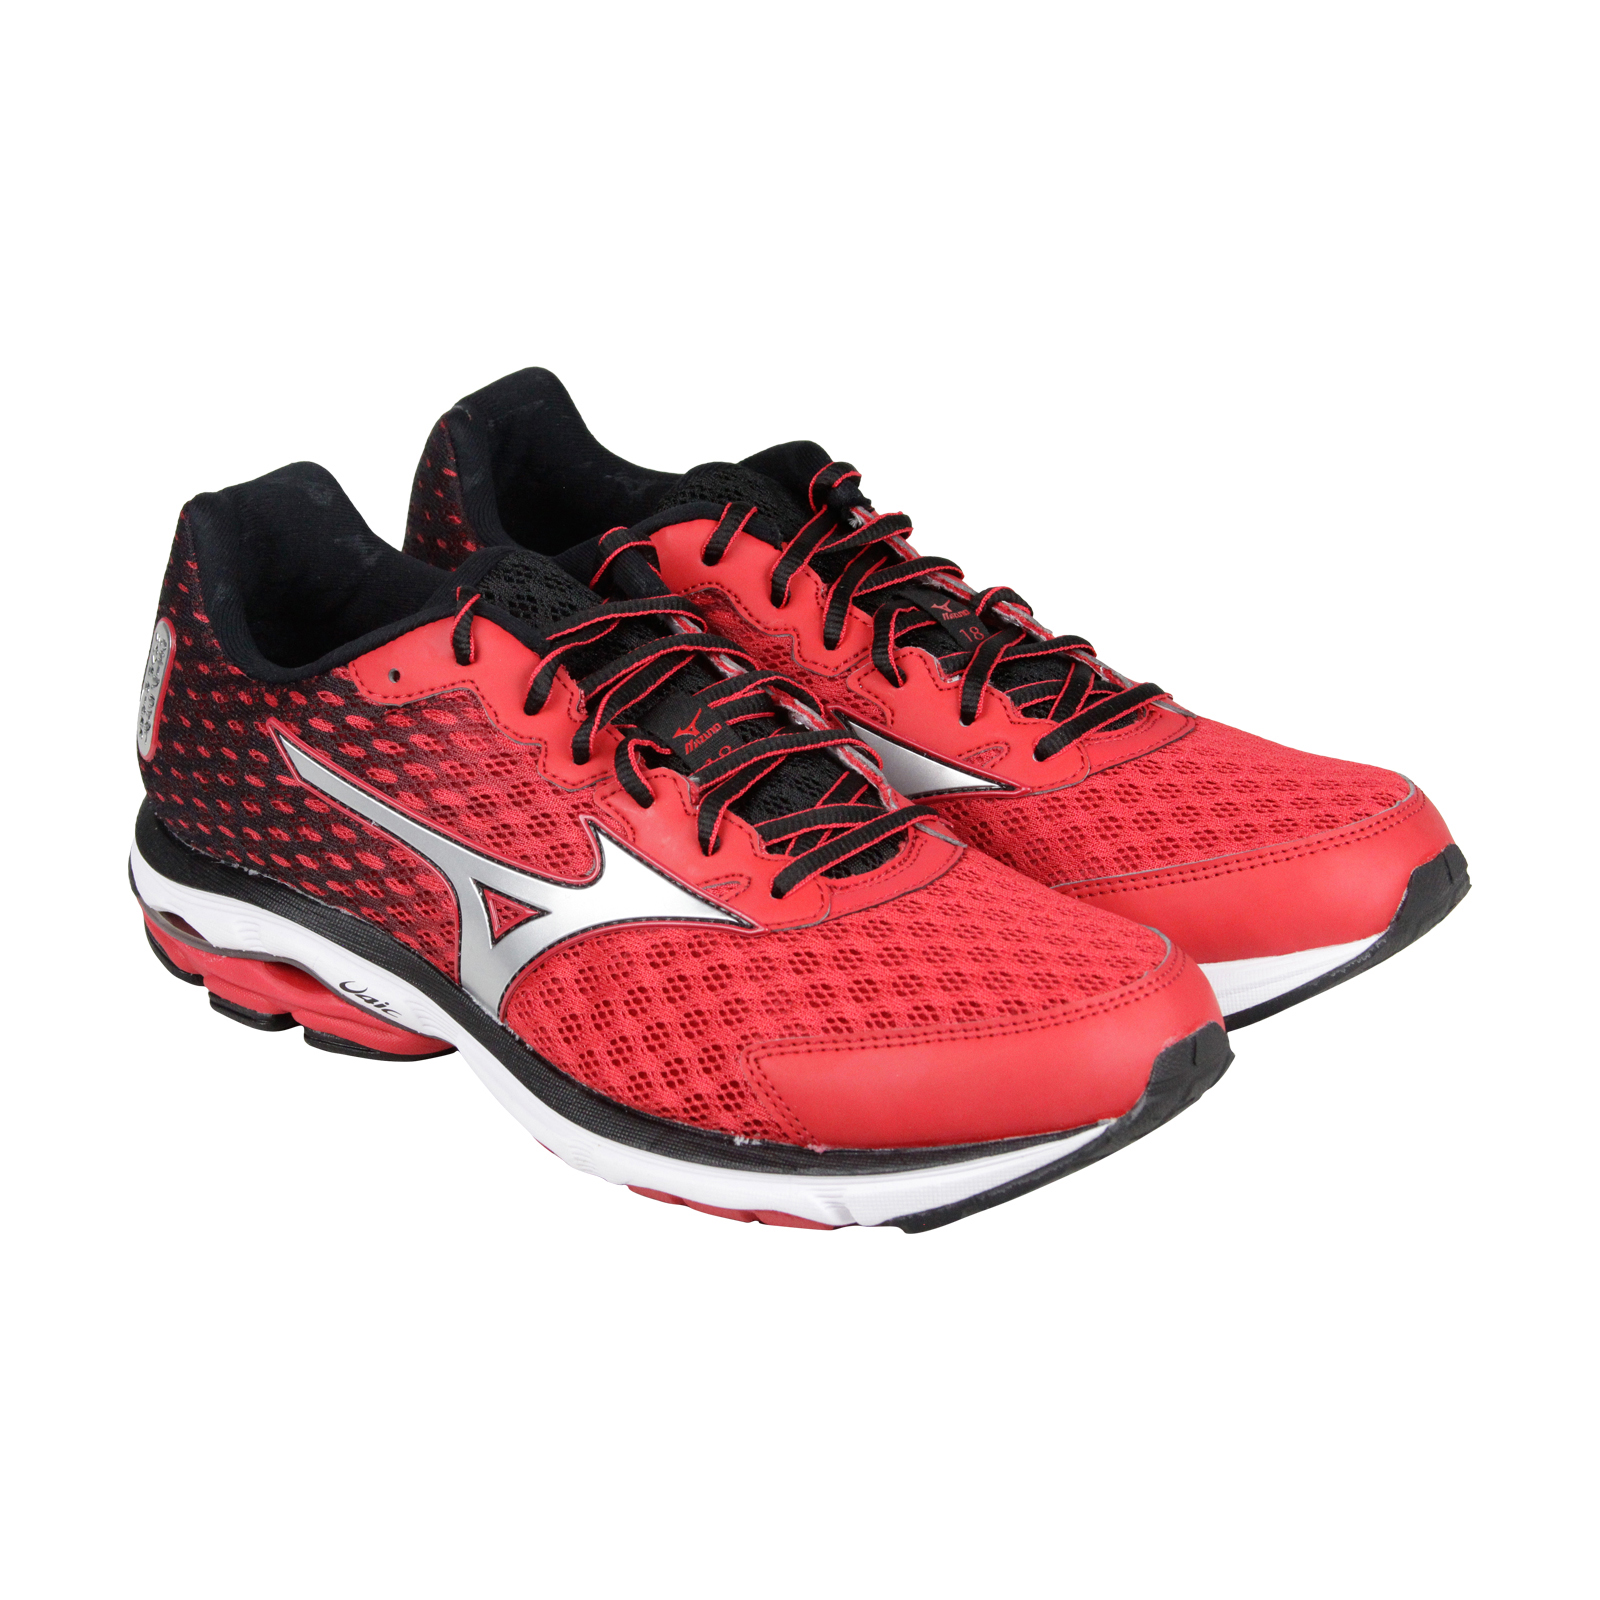 Mizuno Rider 18 Mens Red Mesh Athletic Lace Up Running Shoes